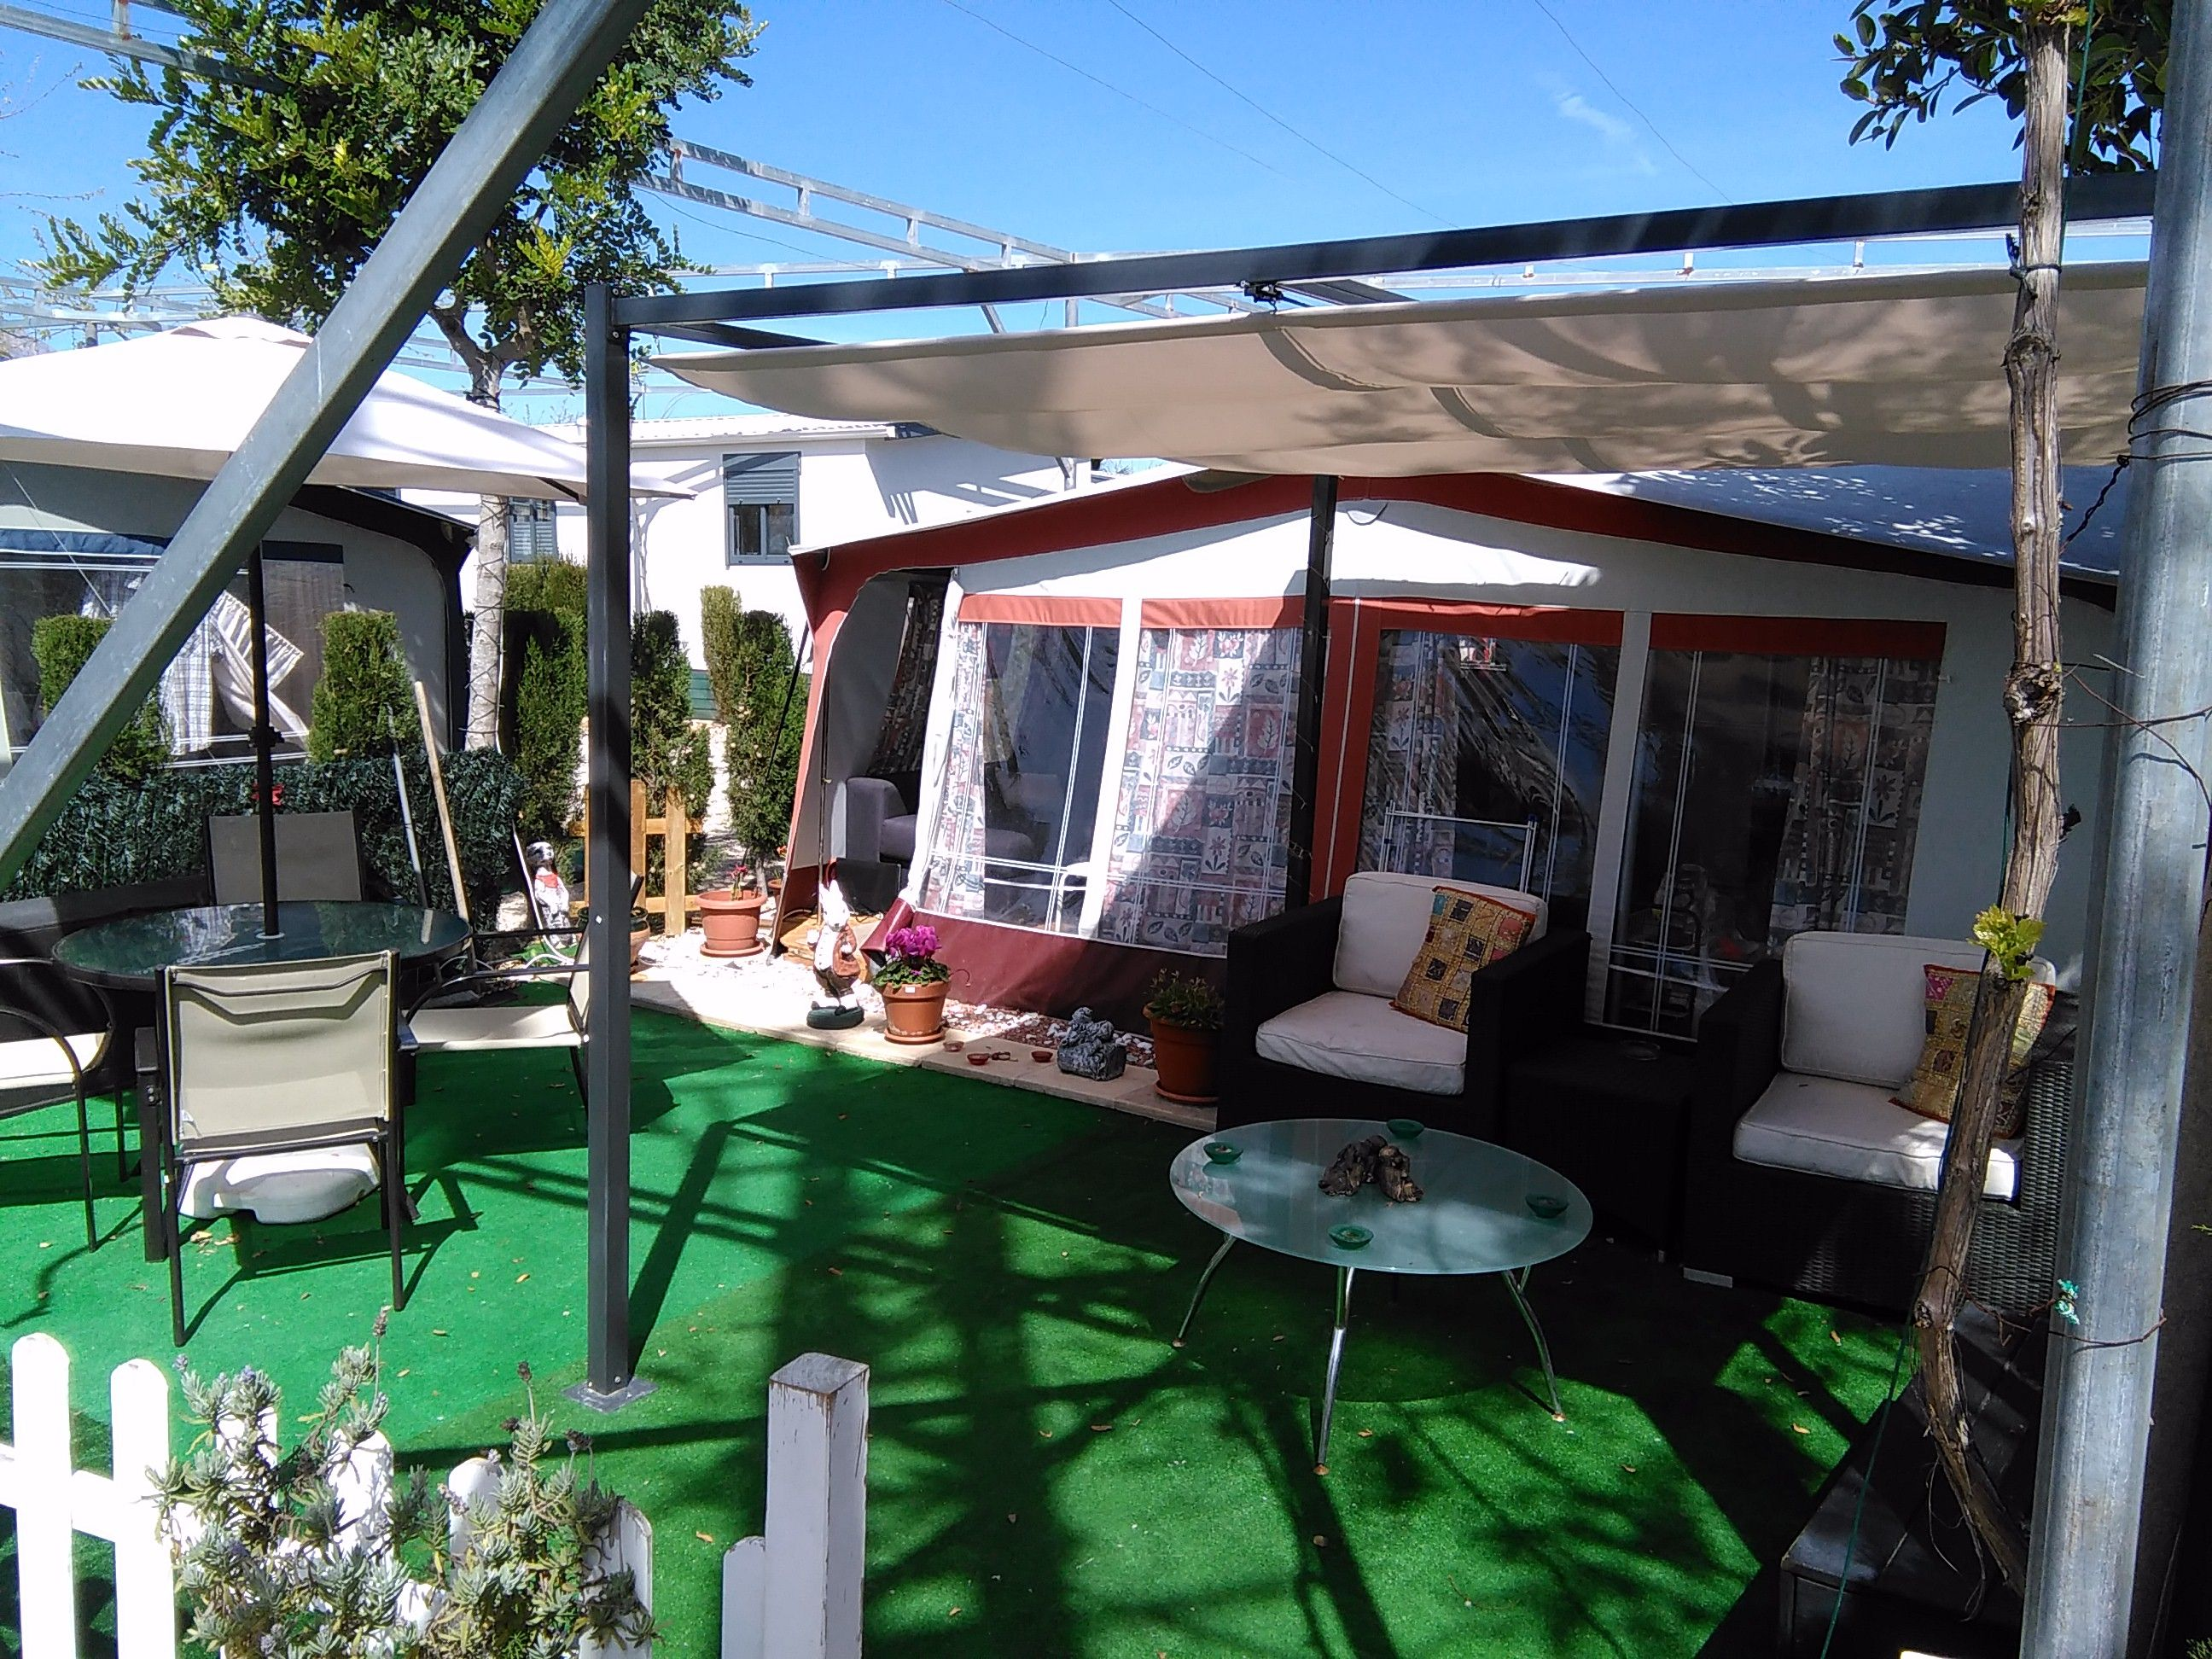 awning truck awnings retractable sale security info everythingbeauty food custom for